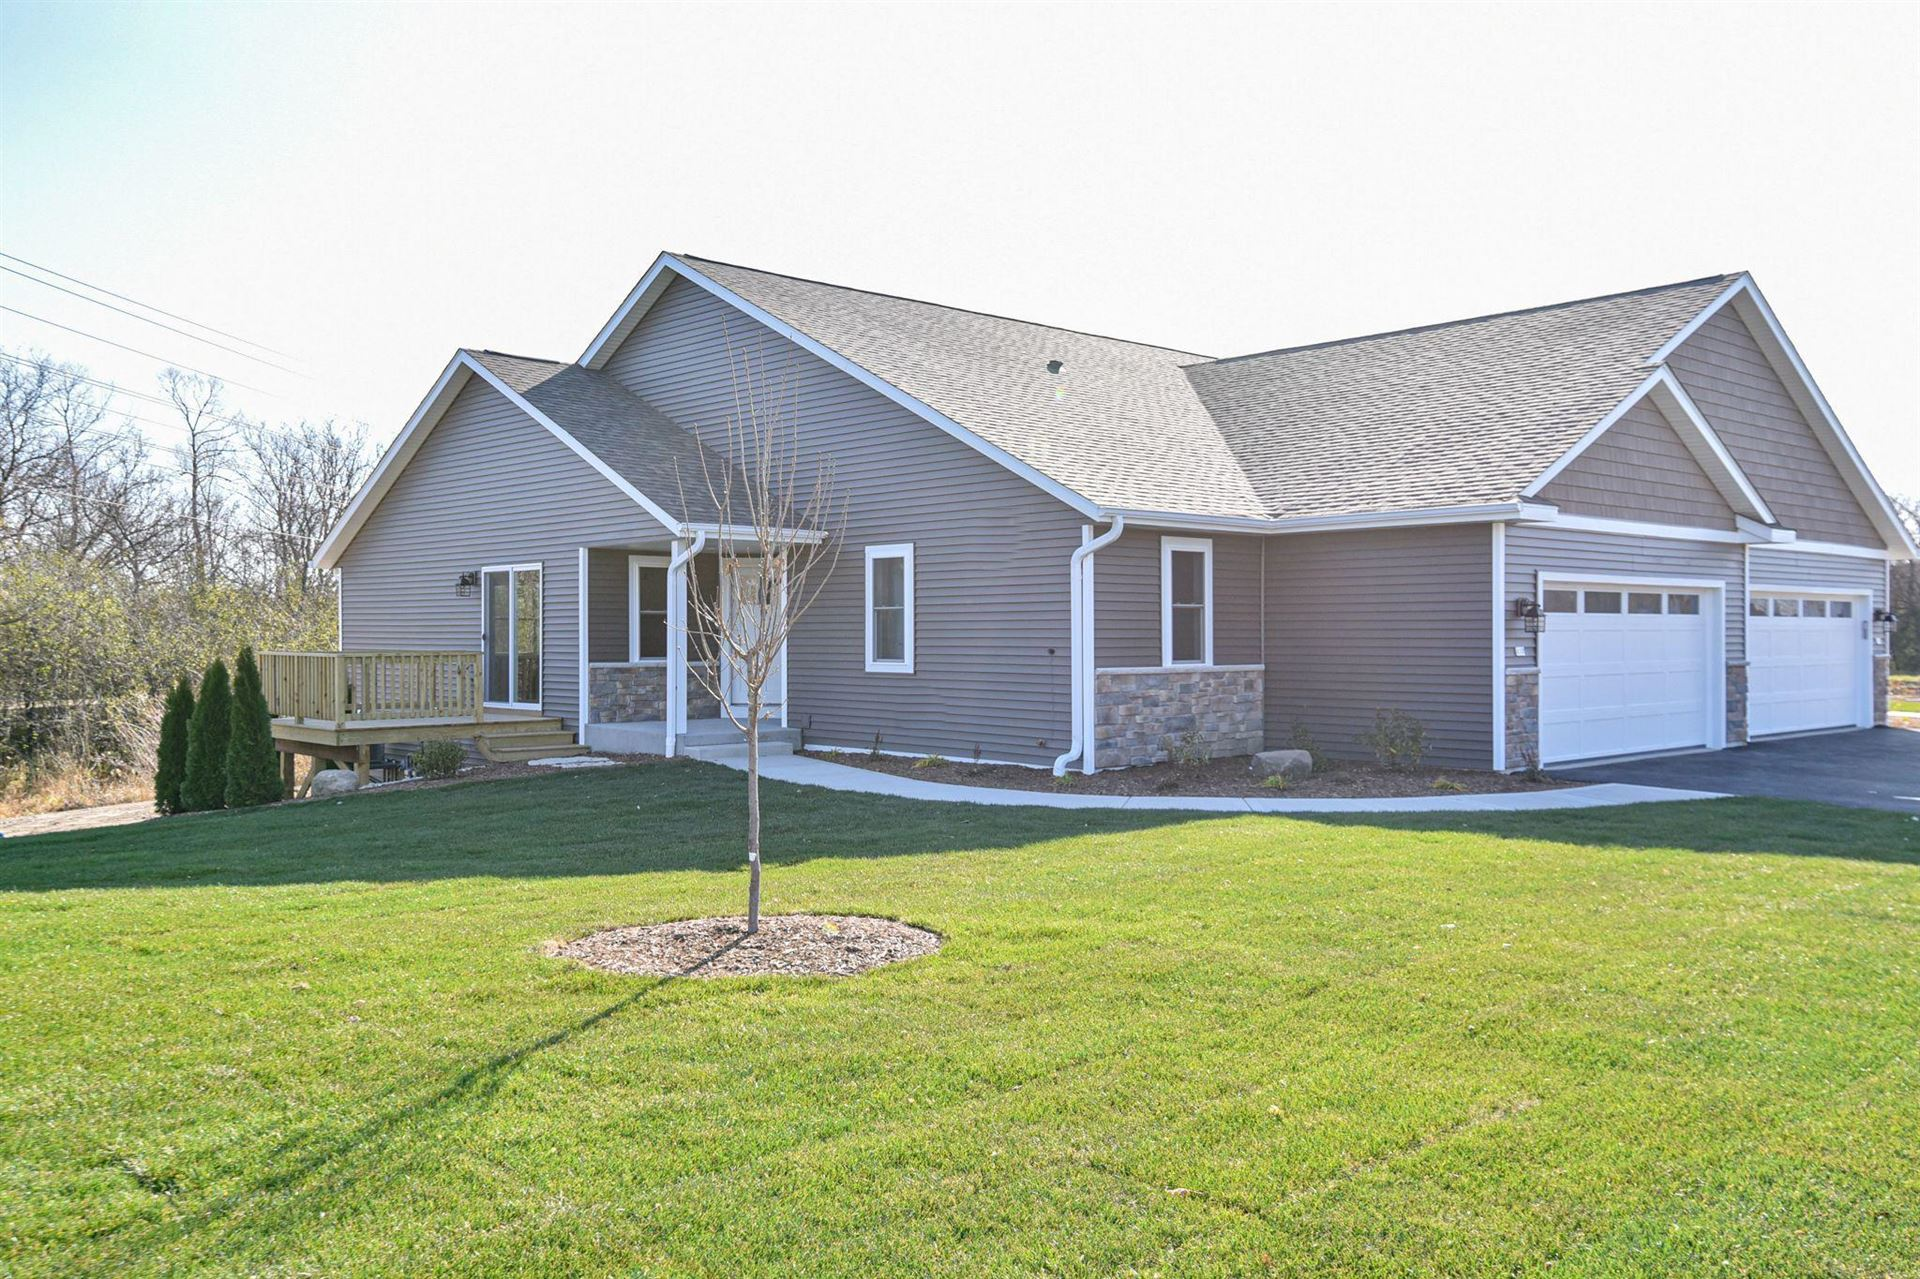 522 Trailview Crossing, Waterford, WI 53185 - #: 1744791